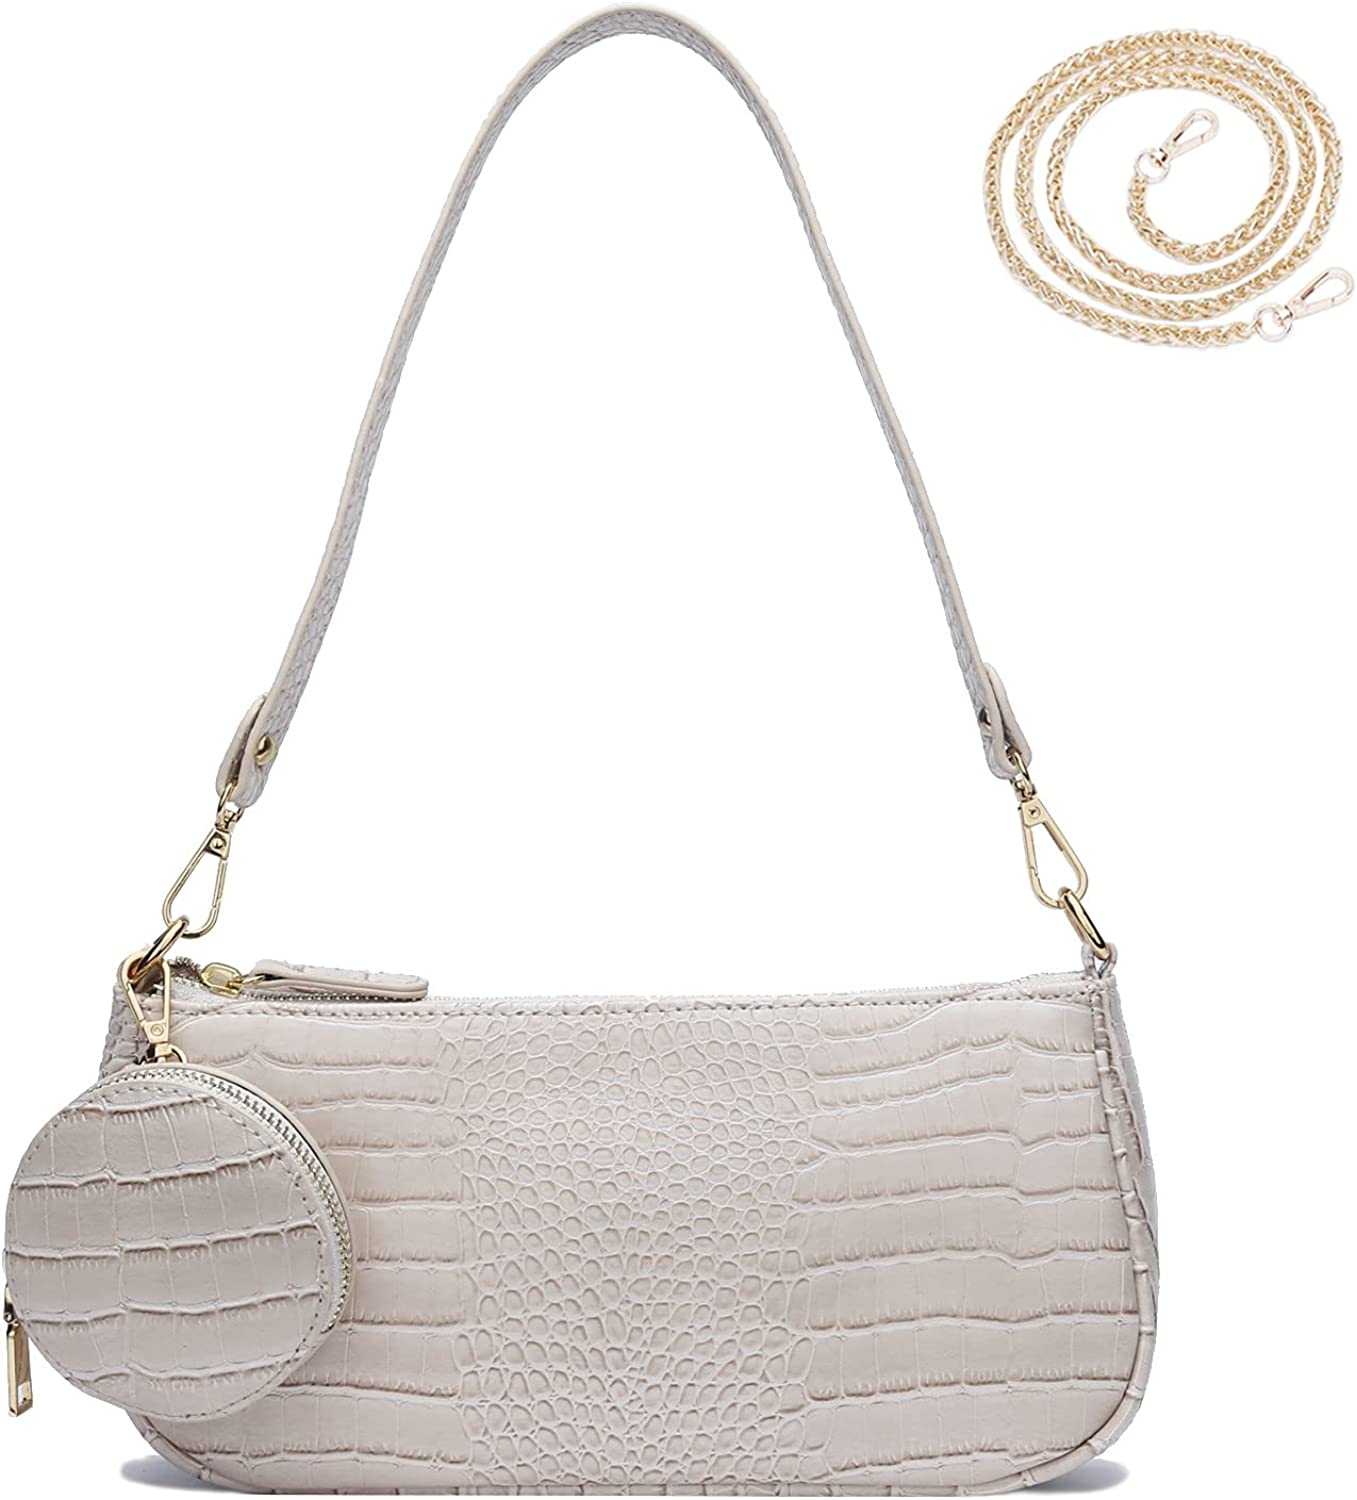 KKXIU Retro Small Shoulder Crossbody Clutch Bag for Women with 2 Removable Straps and Coin Purse